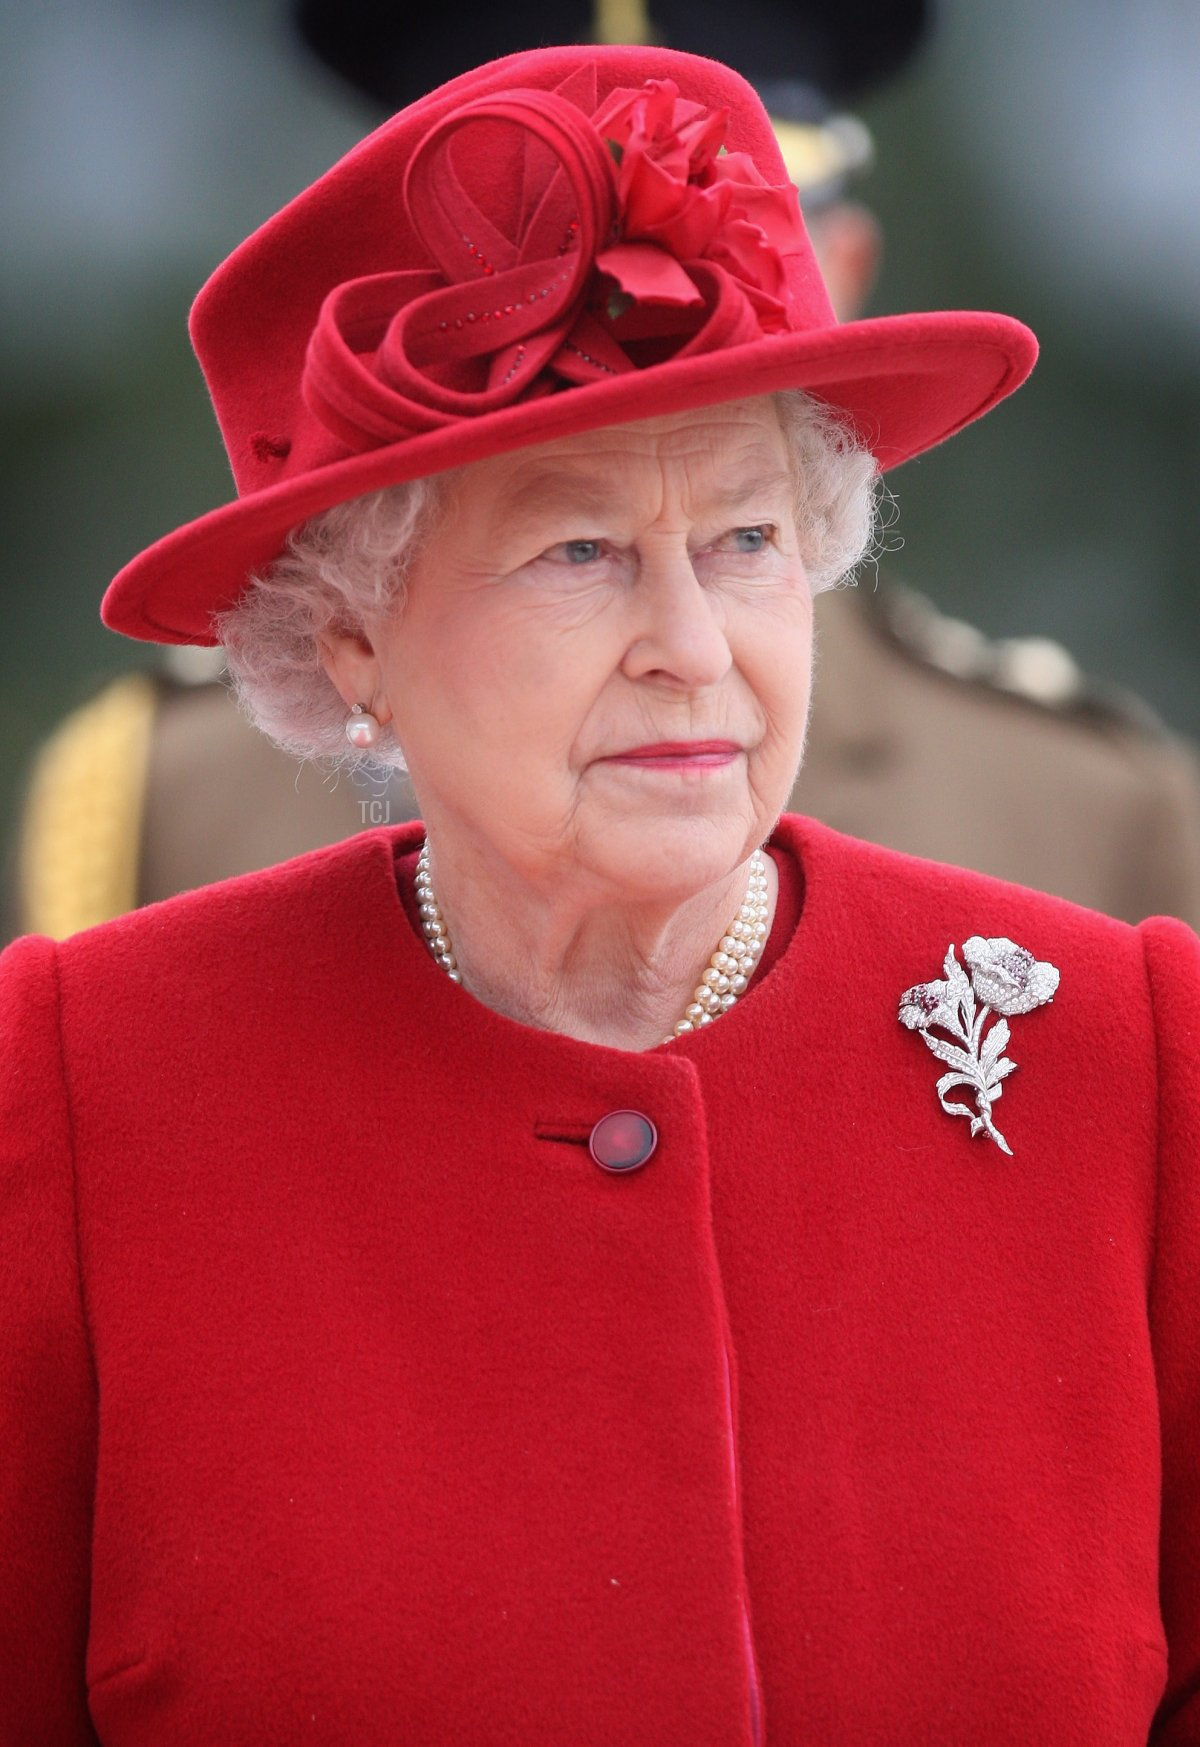 Queen Elizabeth II arrives at the Presidential Palace on the first day of a tour of Slovakia on October 23, 2008 in Bratislava, Slovakia